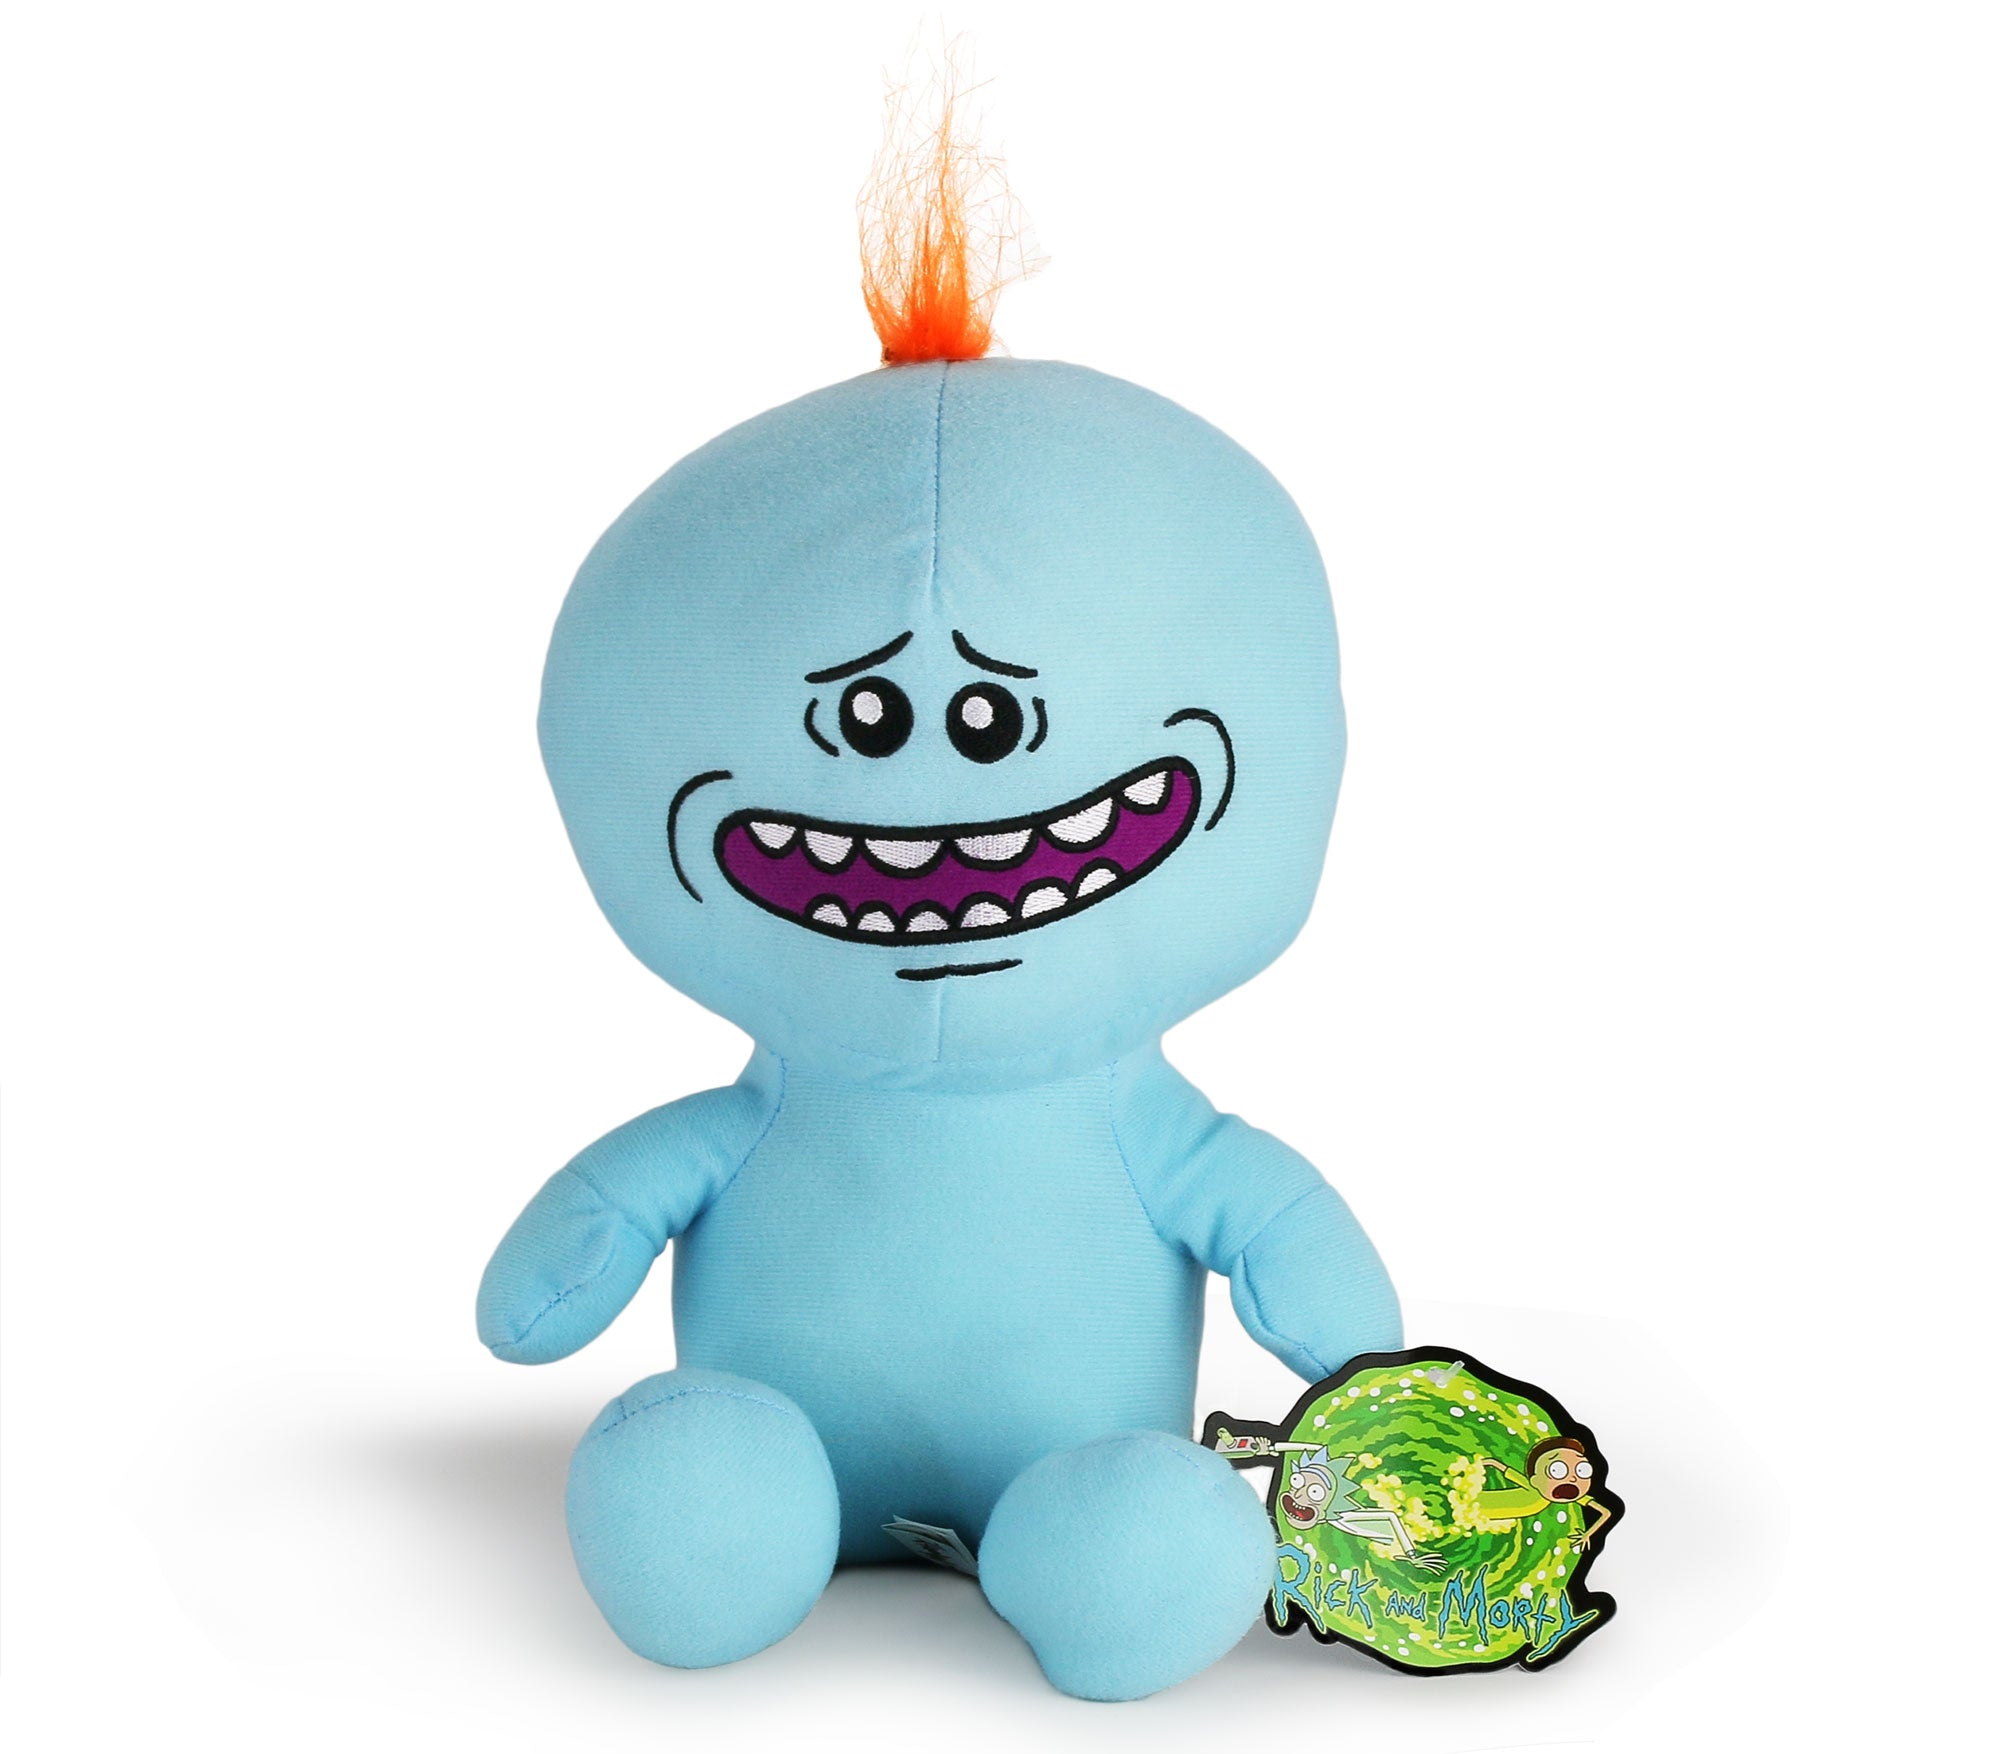 Rick&Morty-Plush Mr. Meeseeks